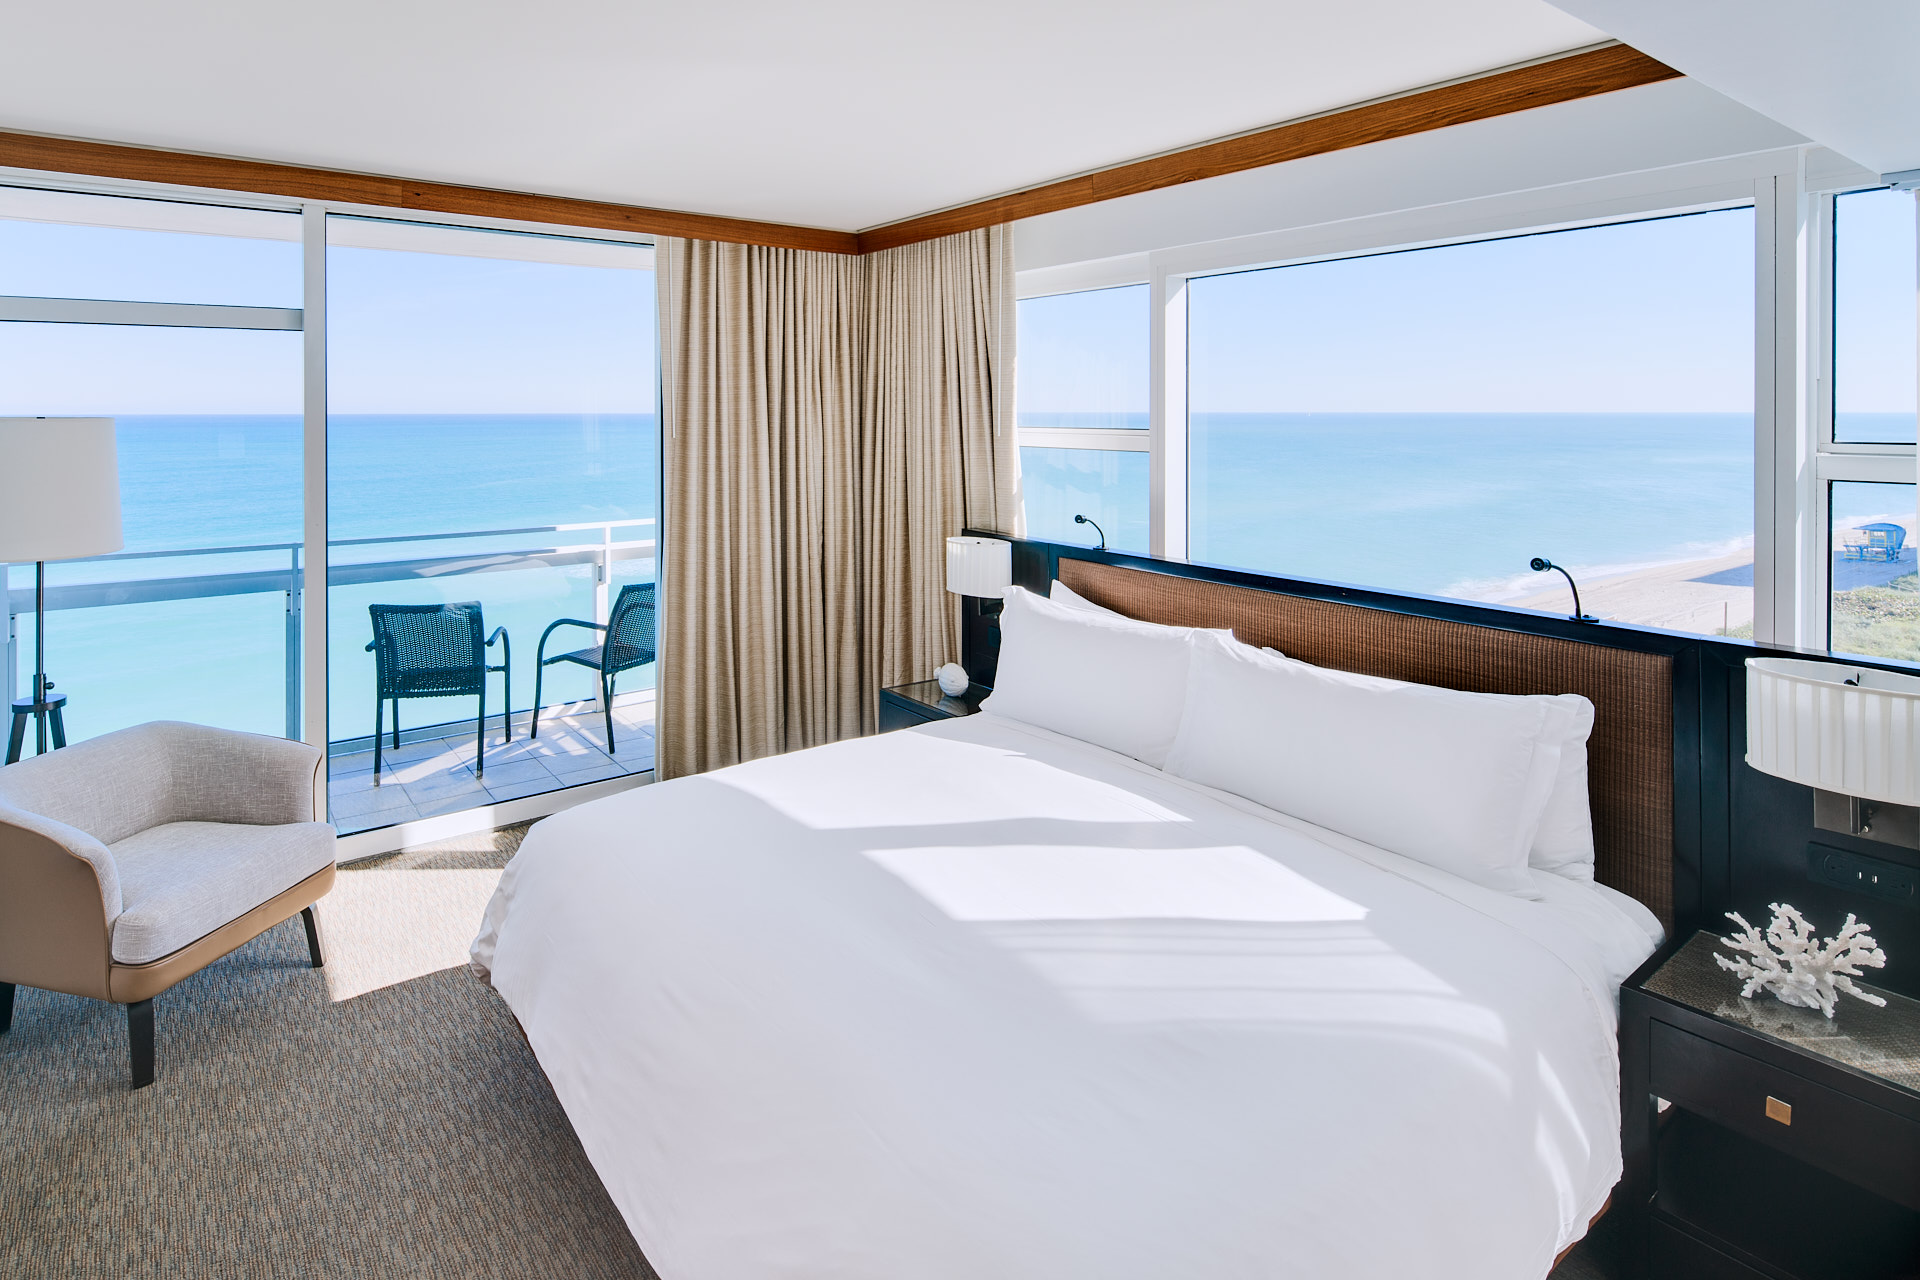 Corner suite looking over the sea and beach at the Carillon Miami